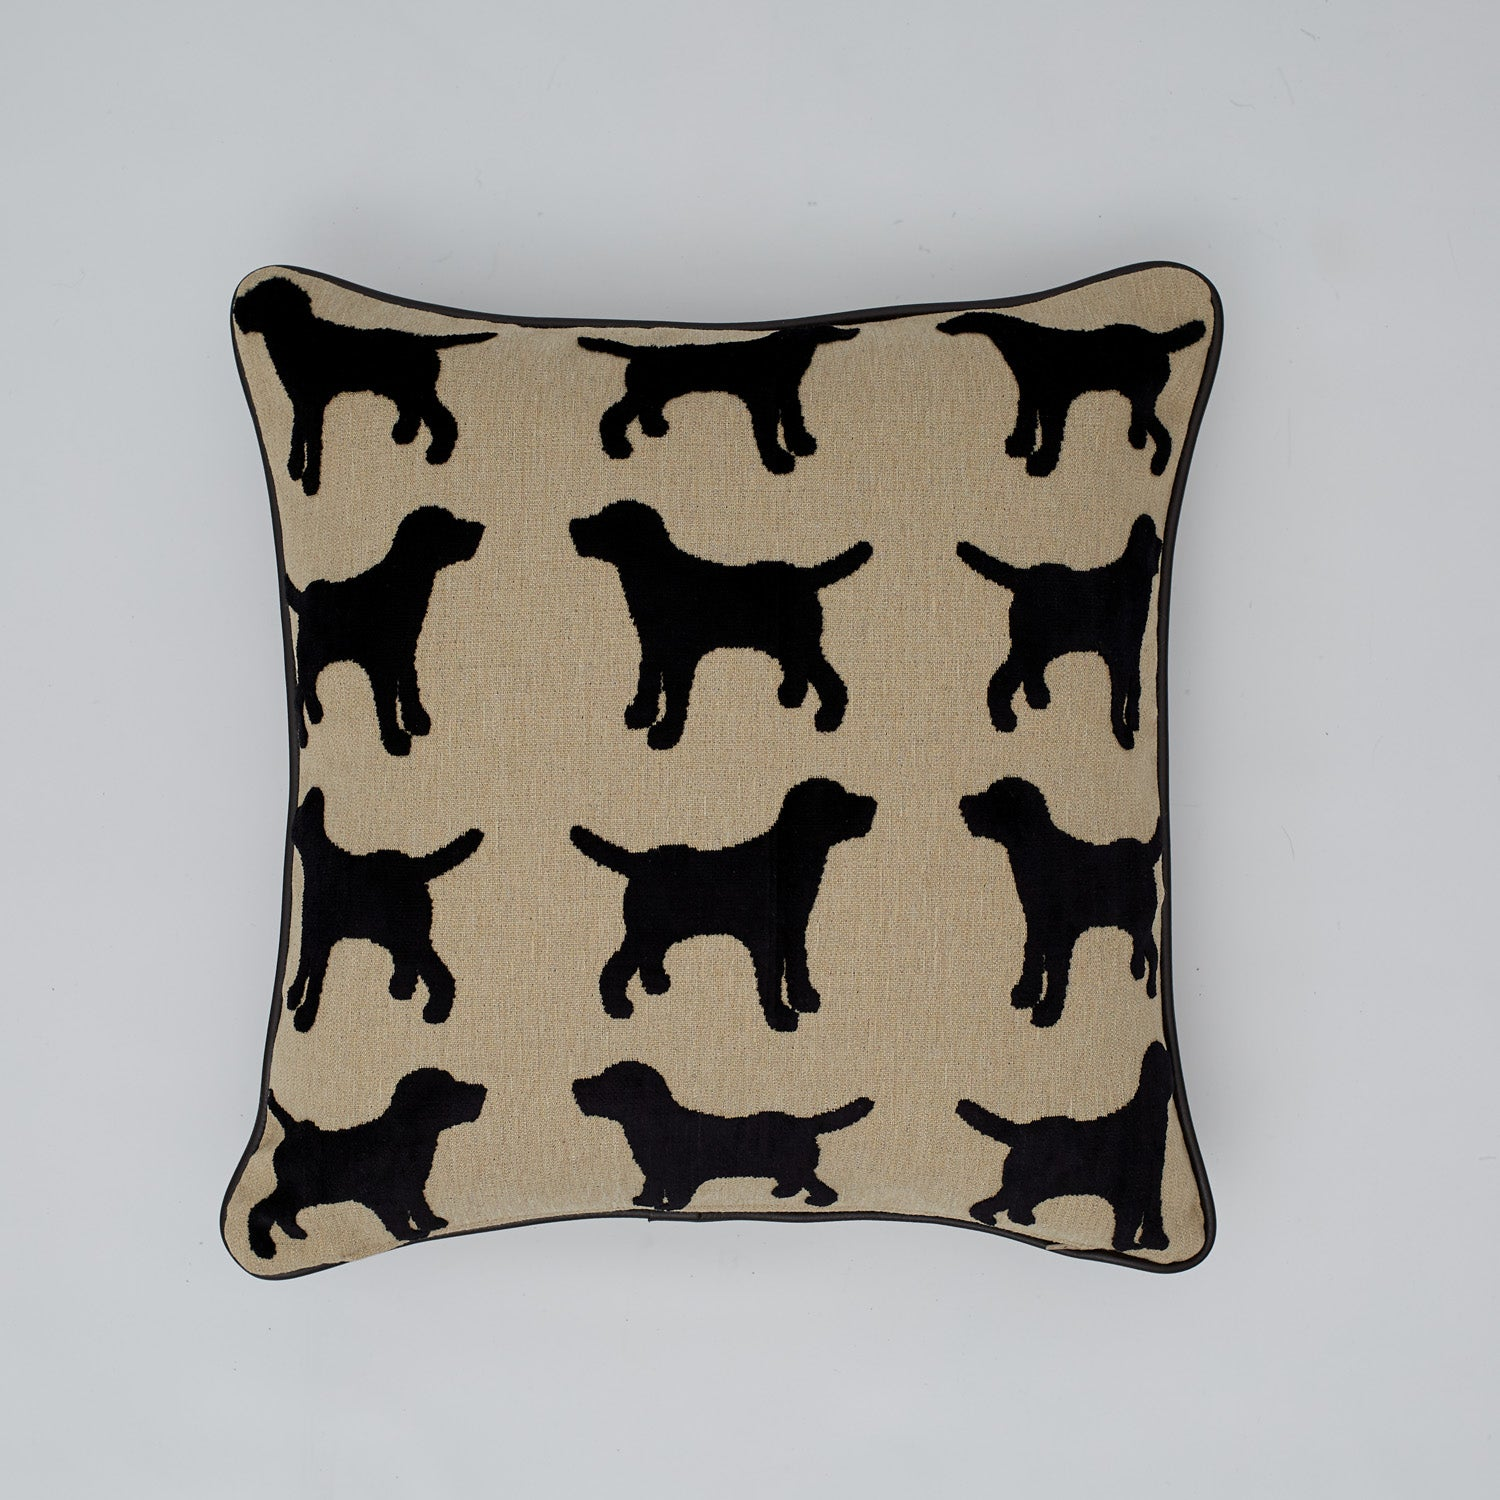 Textured fabric cushion